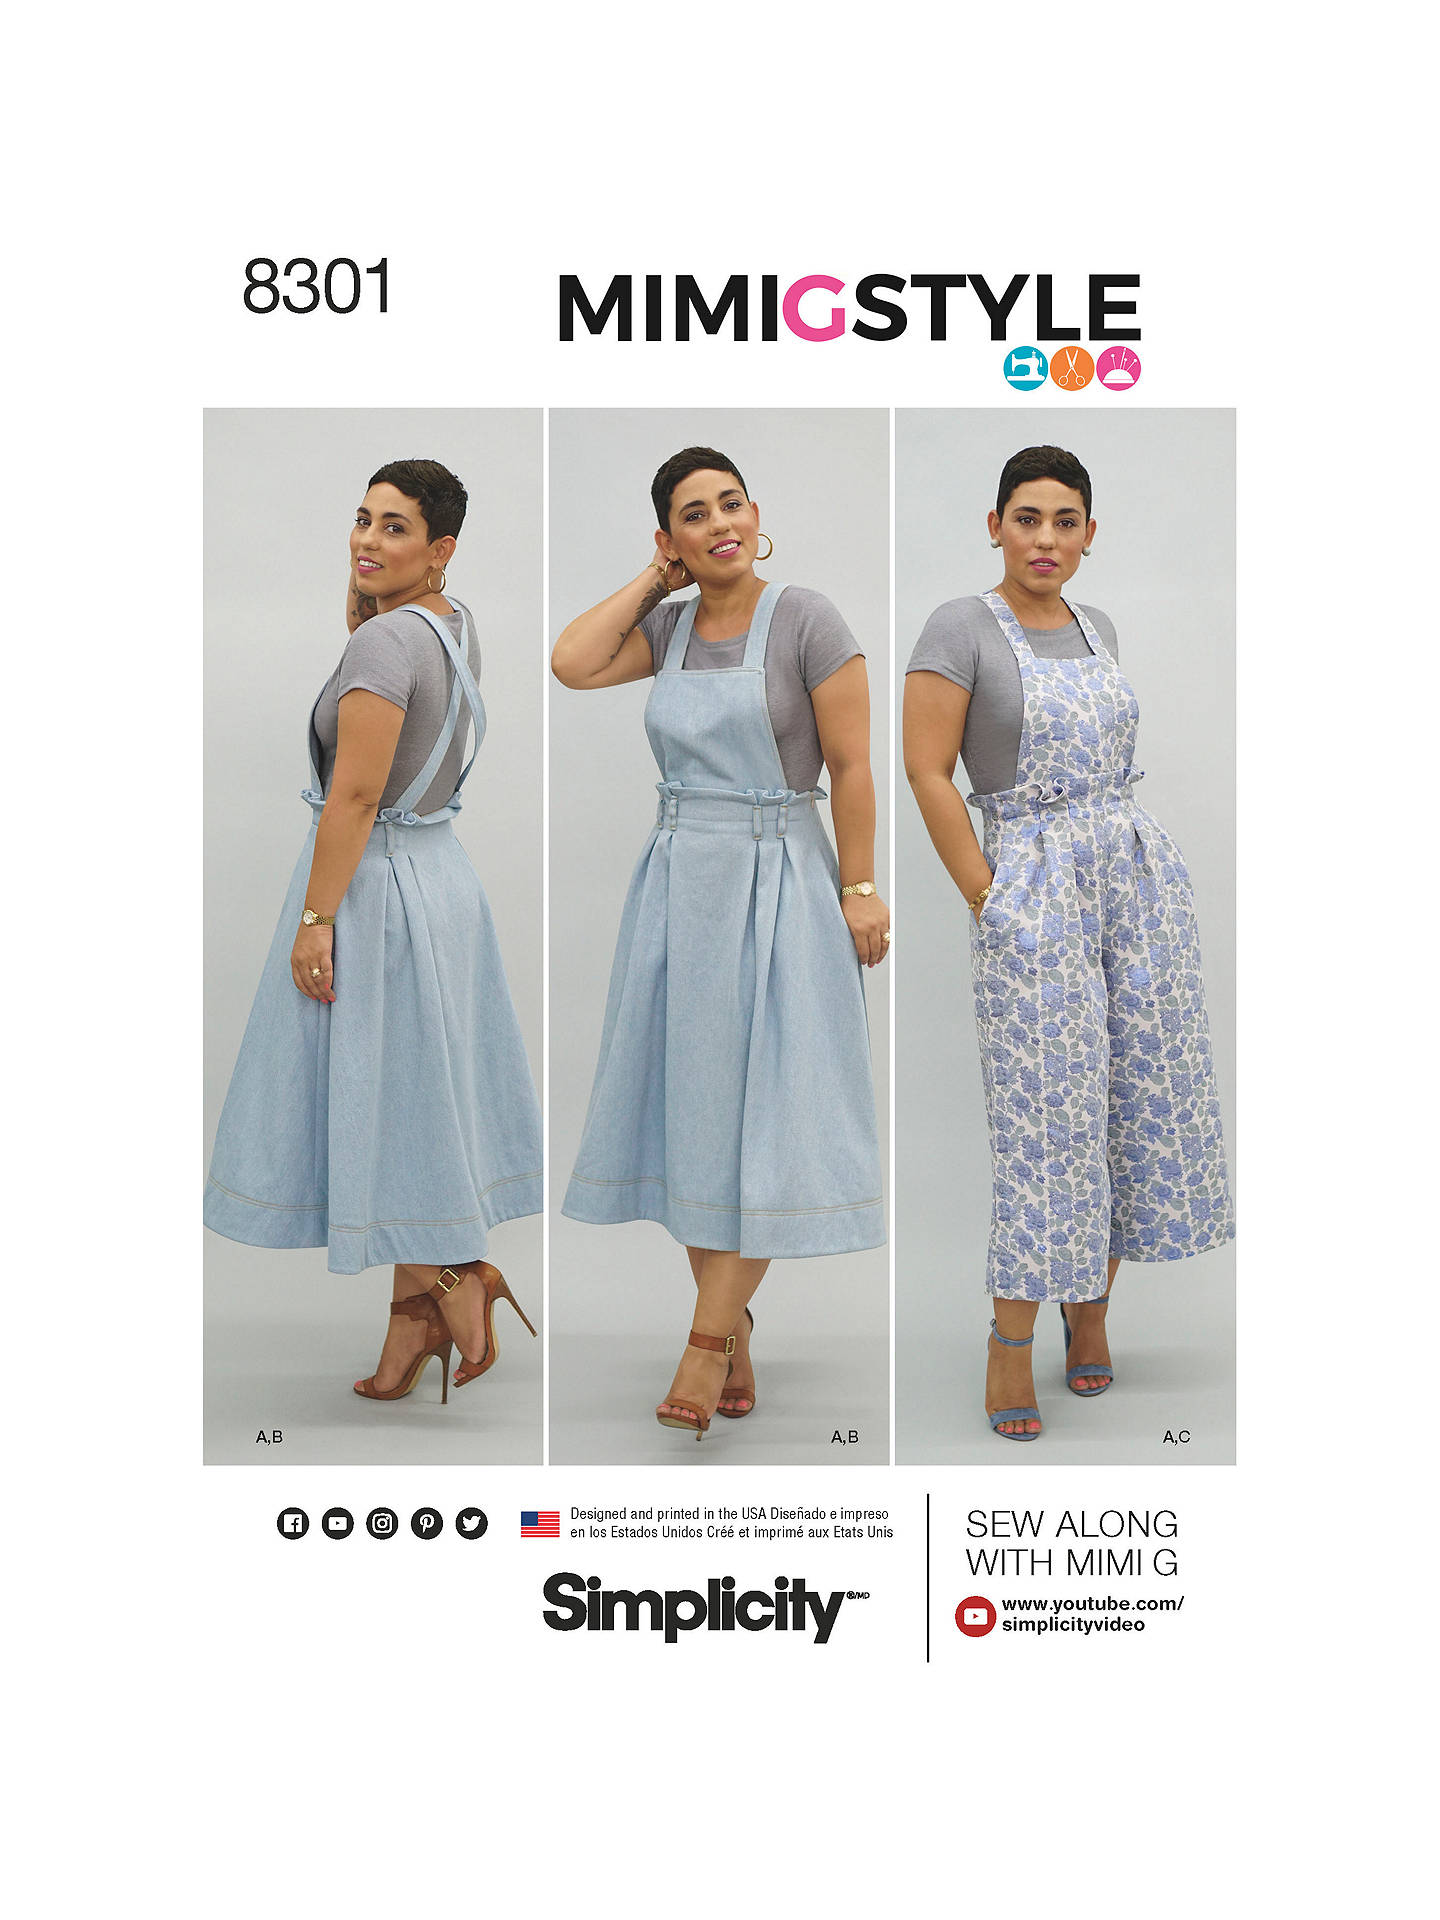 Simplicity Mimi G Women S Dress Sewing Pattern 8301 At John Lewis